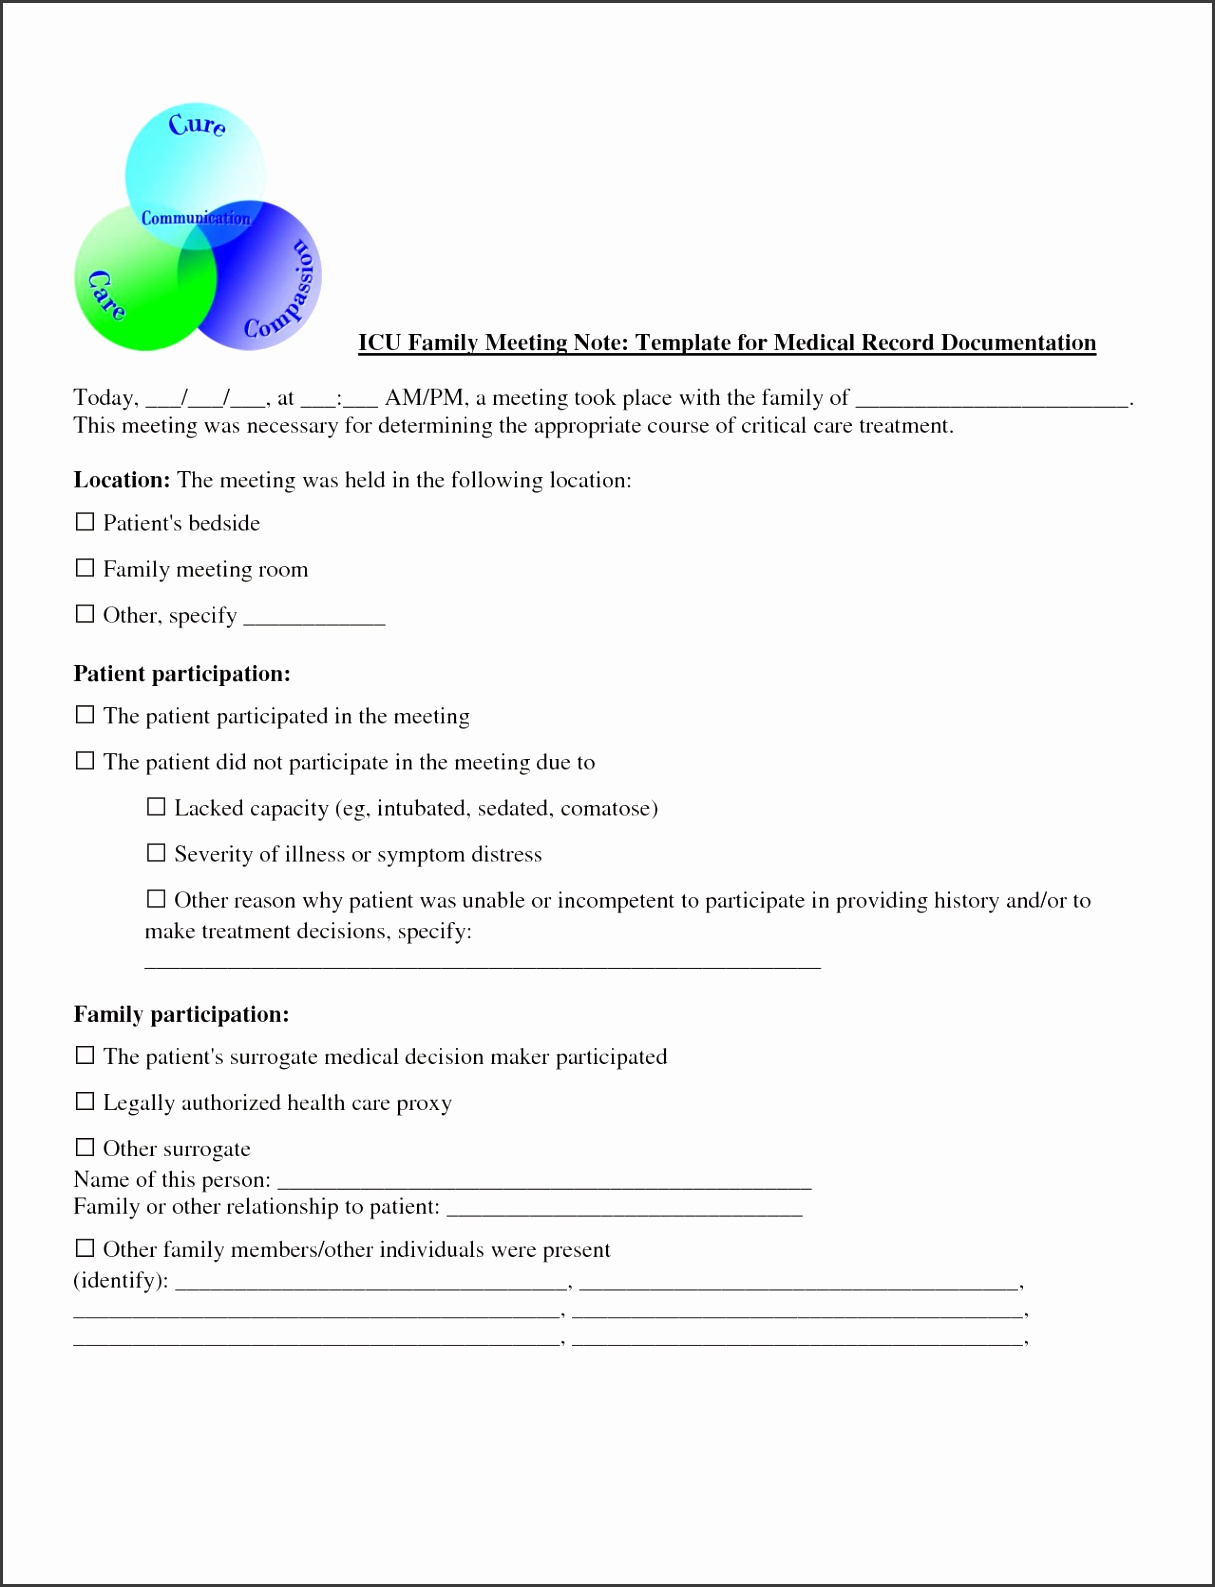 ICU Family Meeting Note Template for Medical Record Documentation